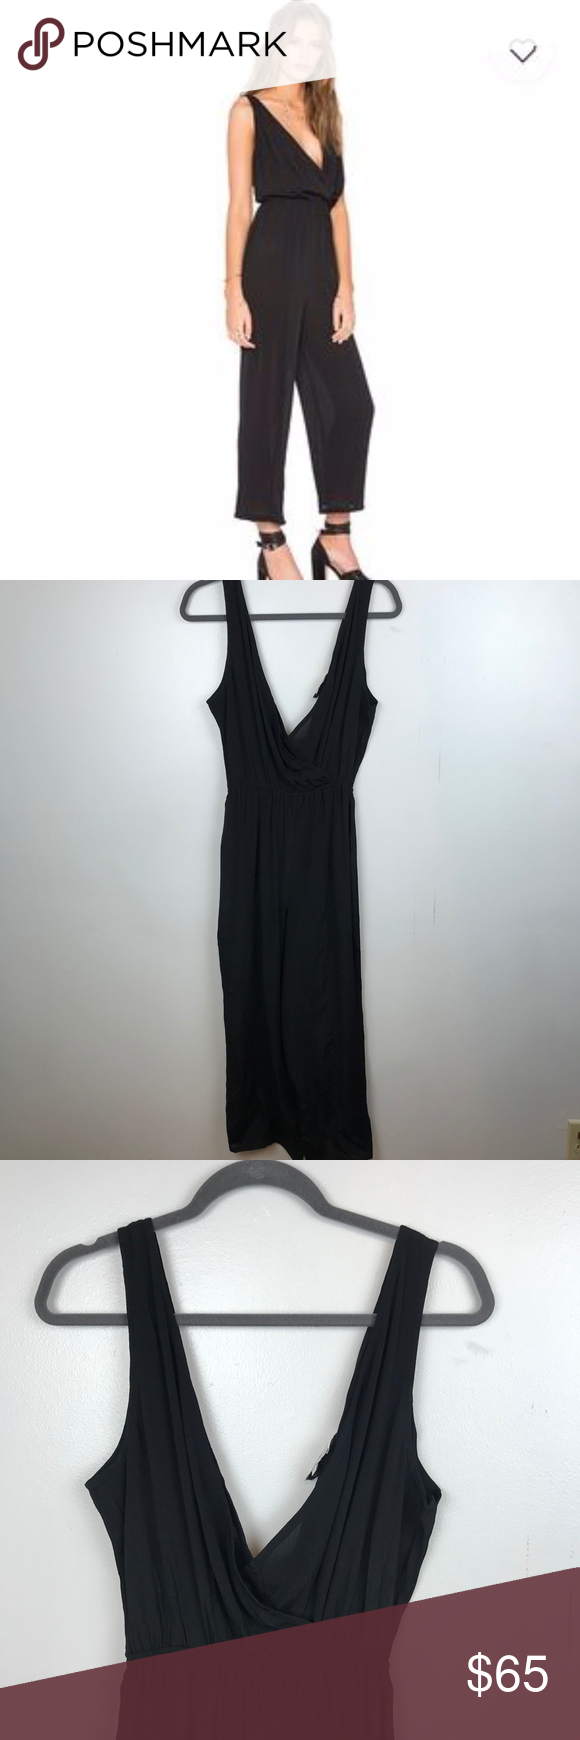 d06eaf1eb81c Privacy Please Gansel Black Jumpsuit  size small  pre-owned. Great  condition. No visible flaws  laying flat approx measurements  shoulder to  hem 52